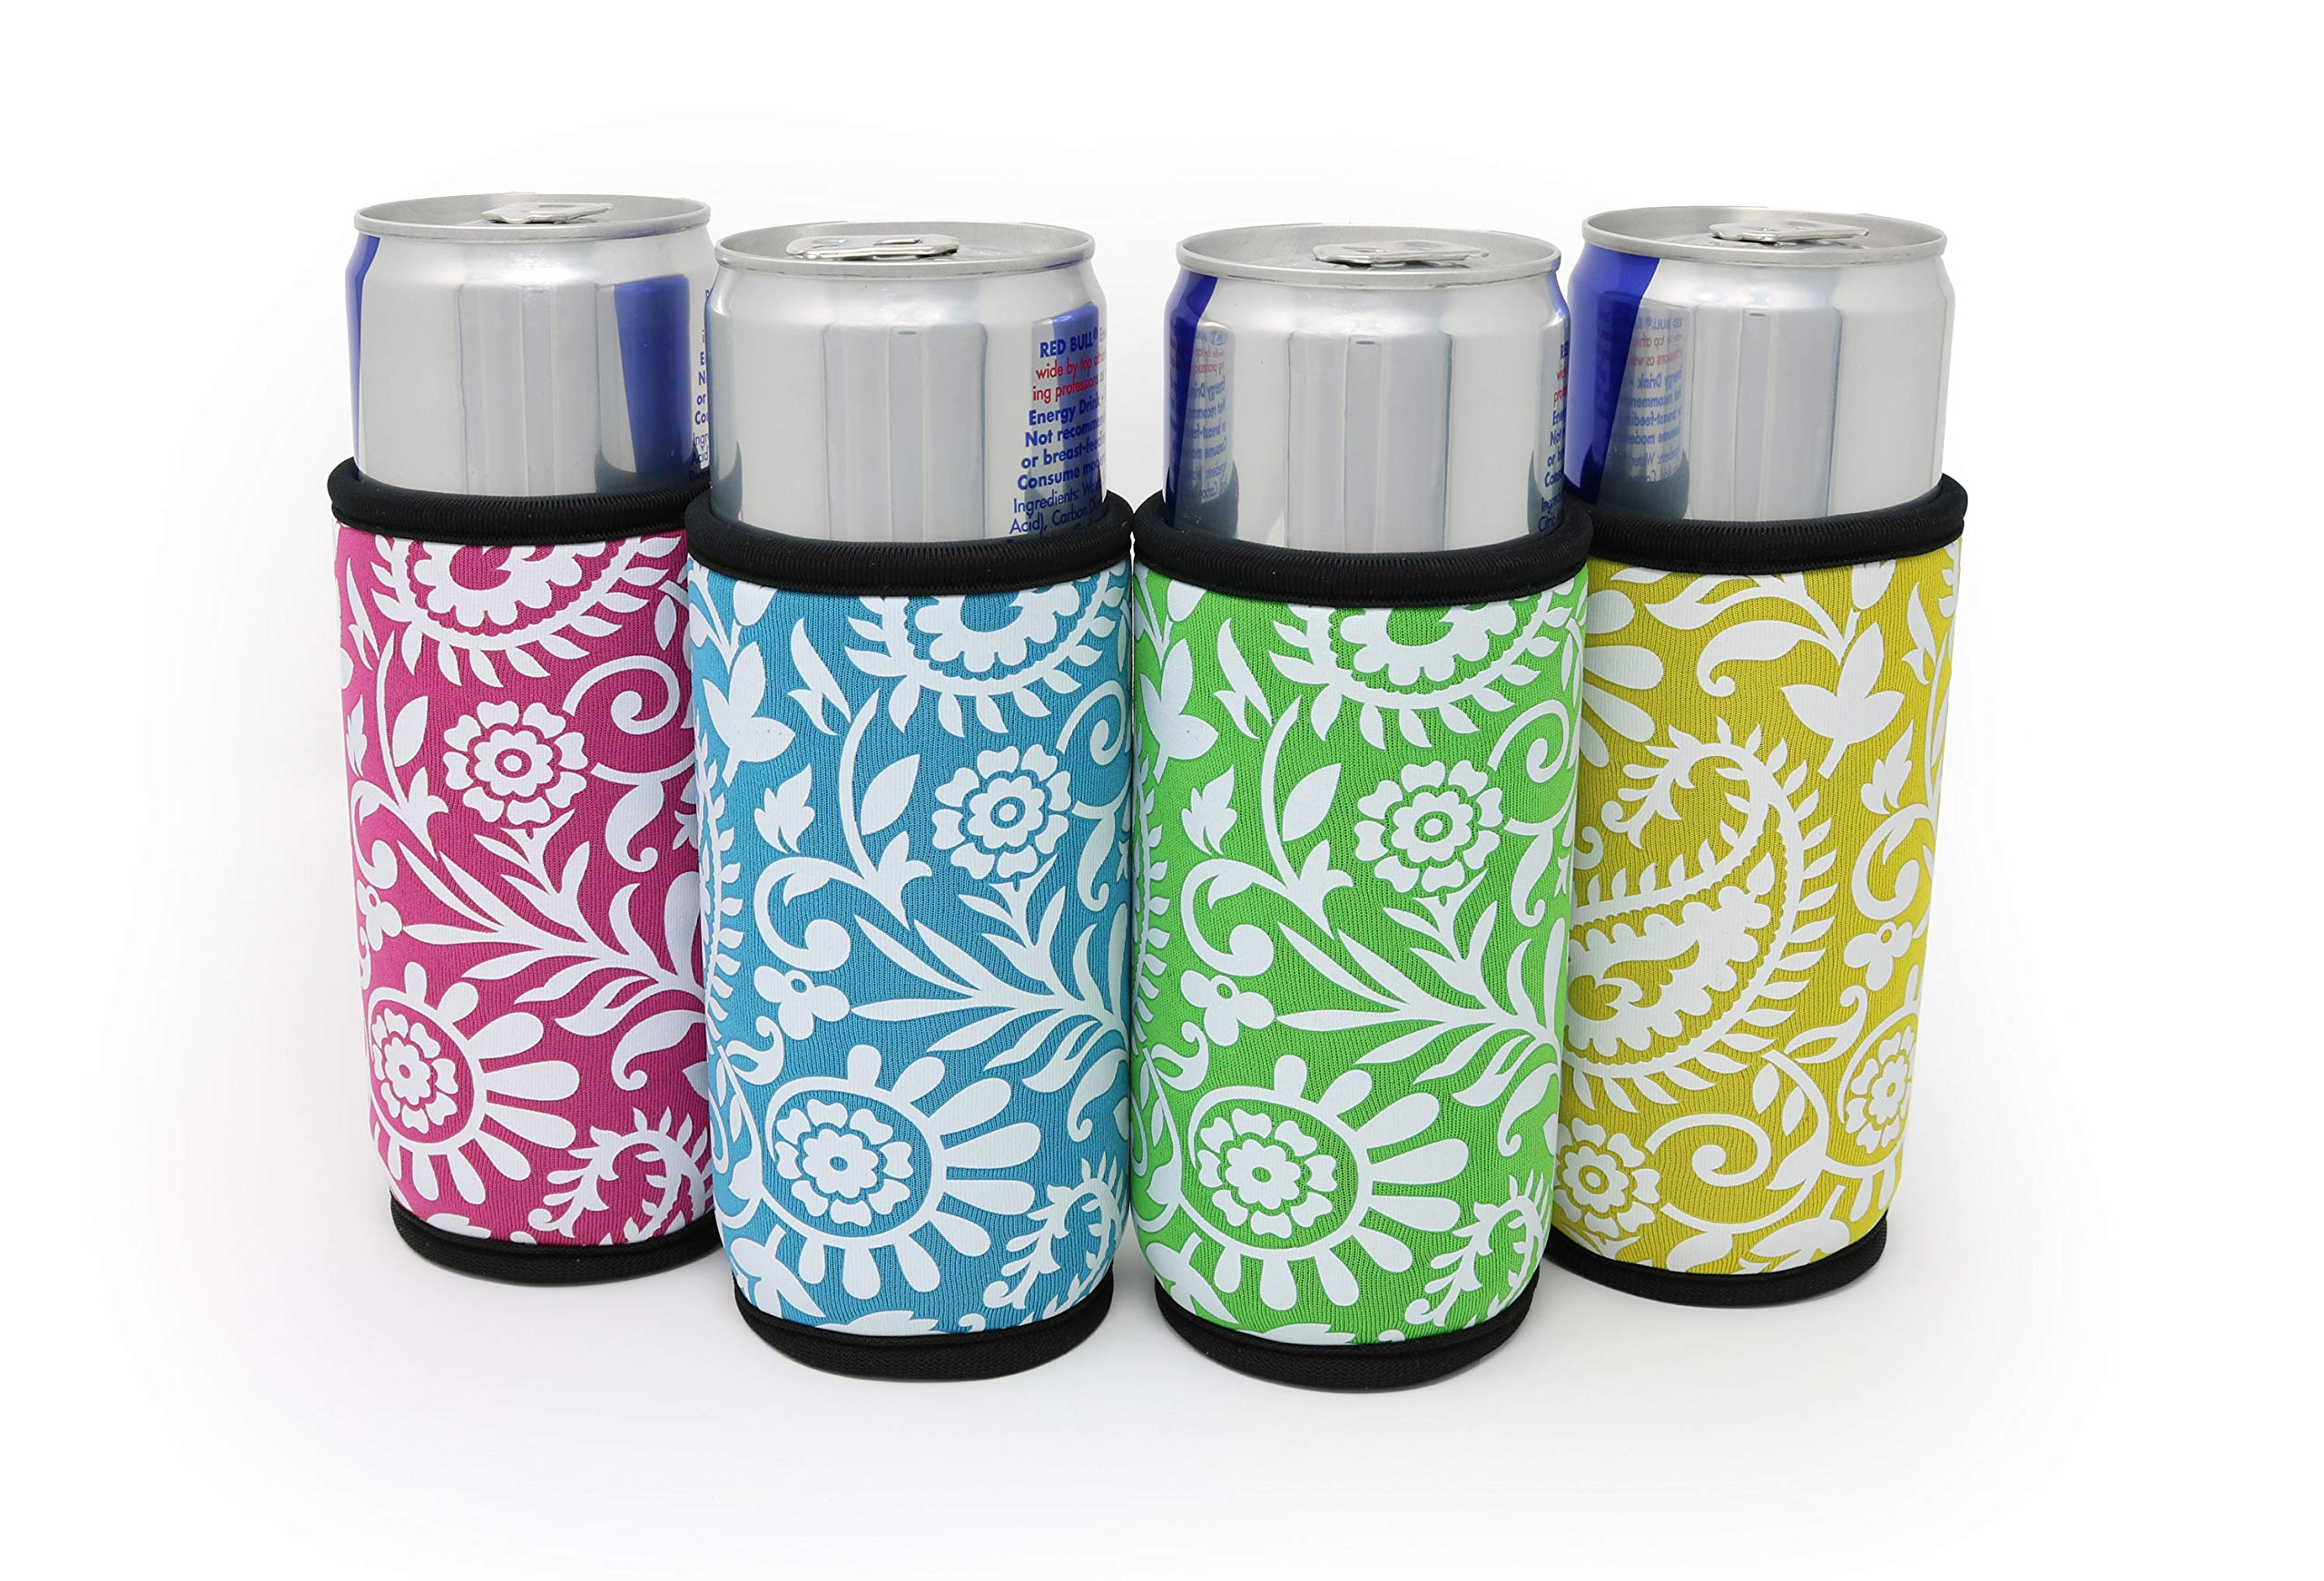 Supercoolies™ - 4 Paisley Neoprene Slim Can Sleeves - Fits skinny 12 oz Energy Drink & Beer Slim Cans - Pink, Green, Light Blue, Yellow - Extra Thick Neoprene with Stitched Fabric Edges